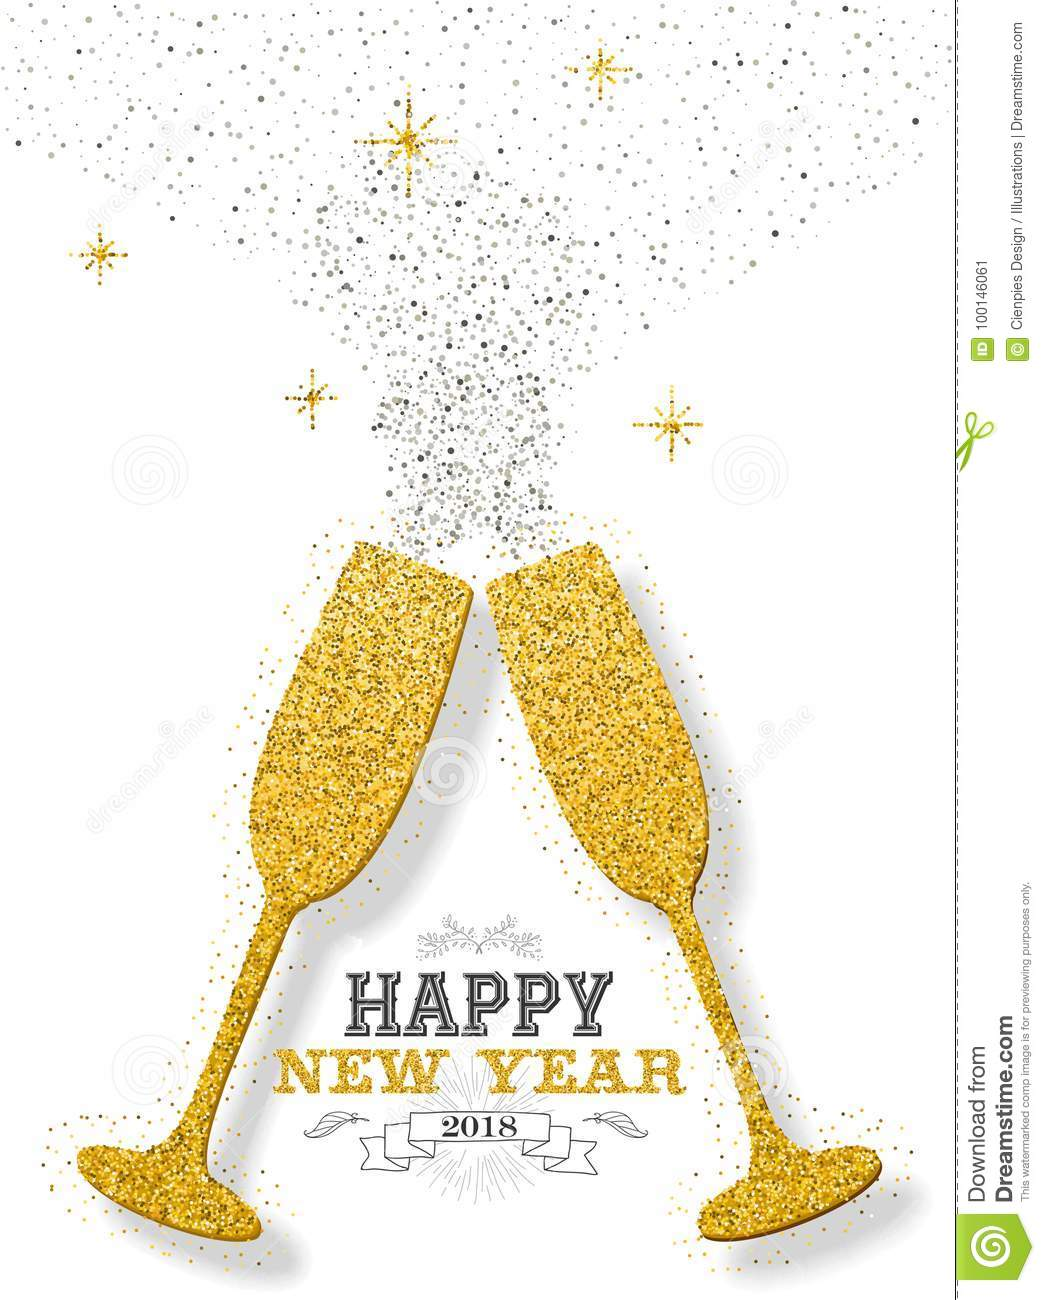 Happy New Year 2018 Party Toast Gold Glitter Card Stock Vector ...